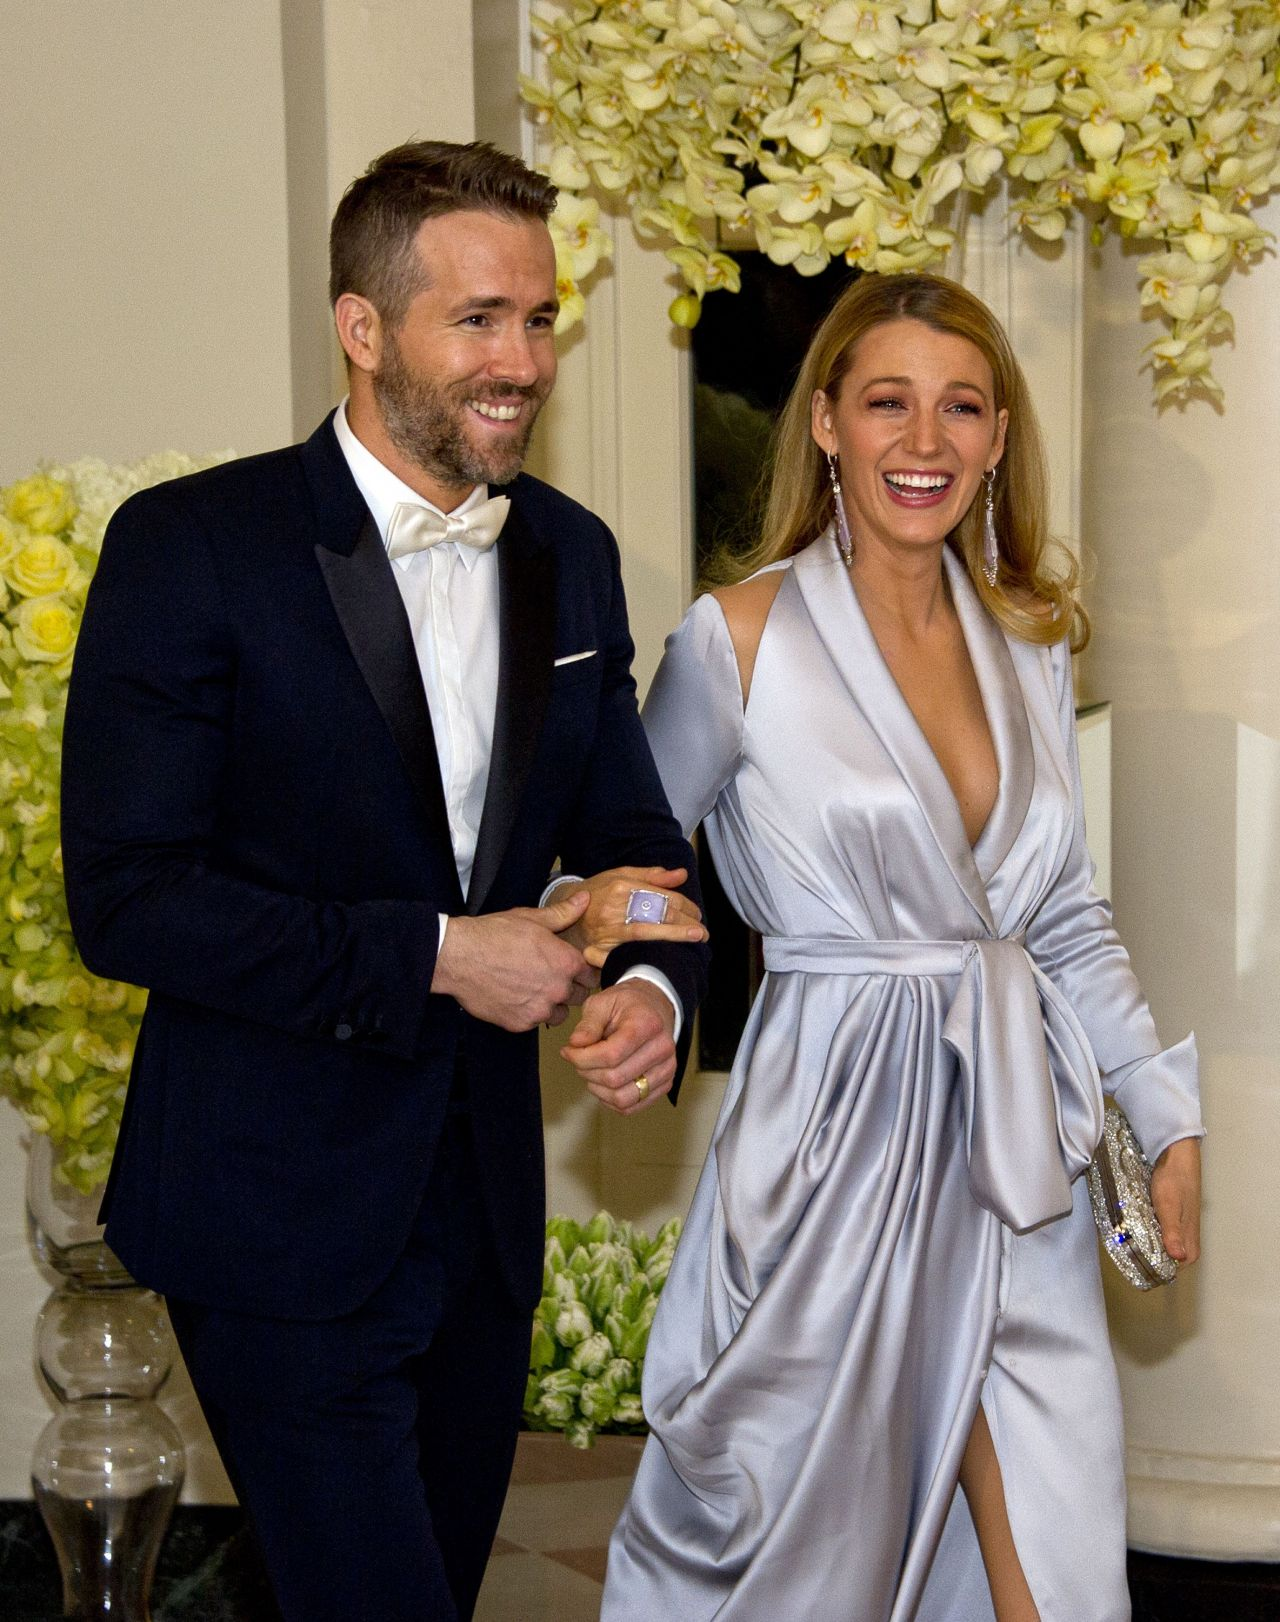 blake-lively-trudeau-state-dinner-in-washington-dc-3-10-2016-2